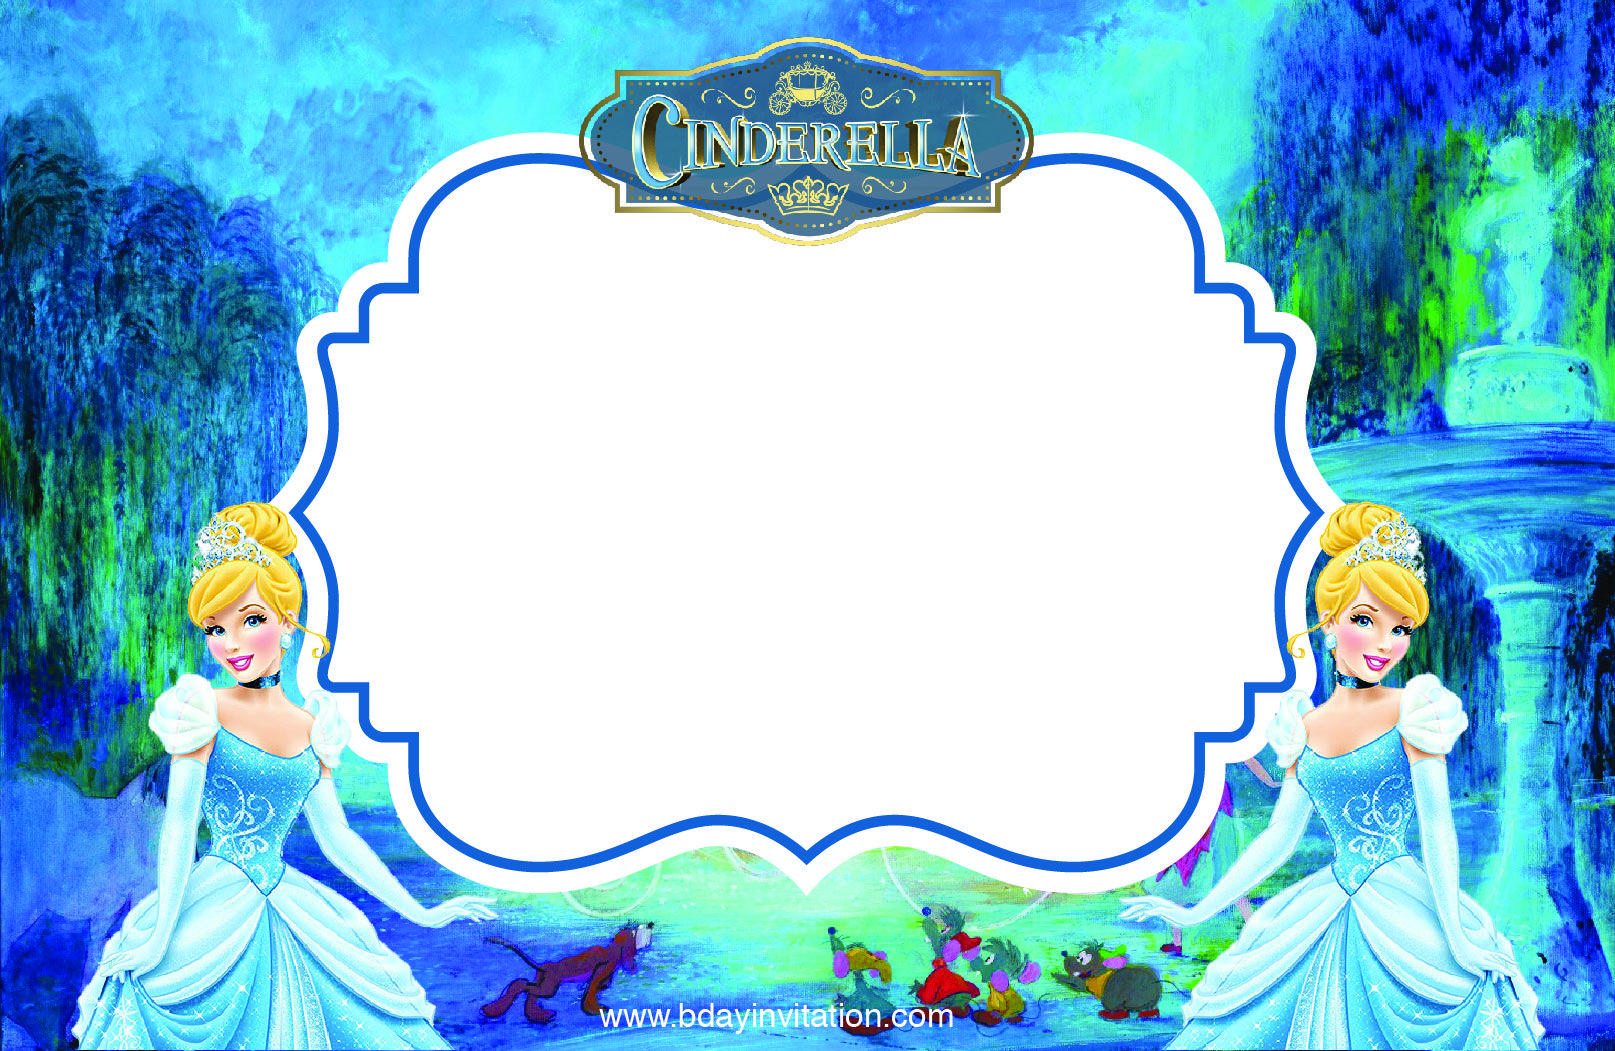 download free printable disney cinderella party invitation template